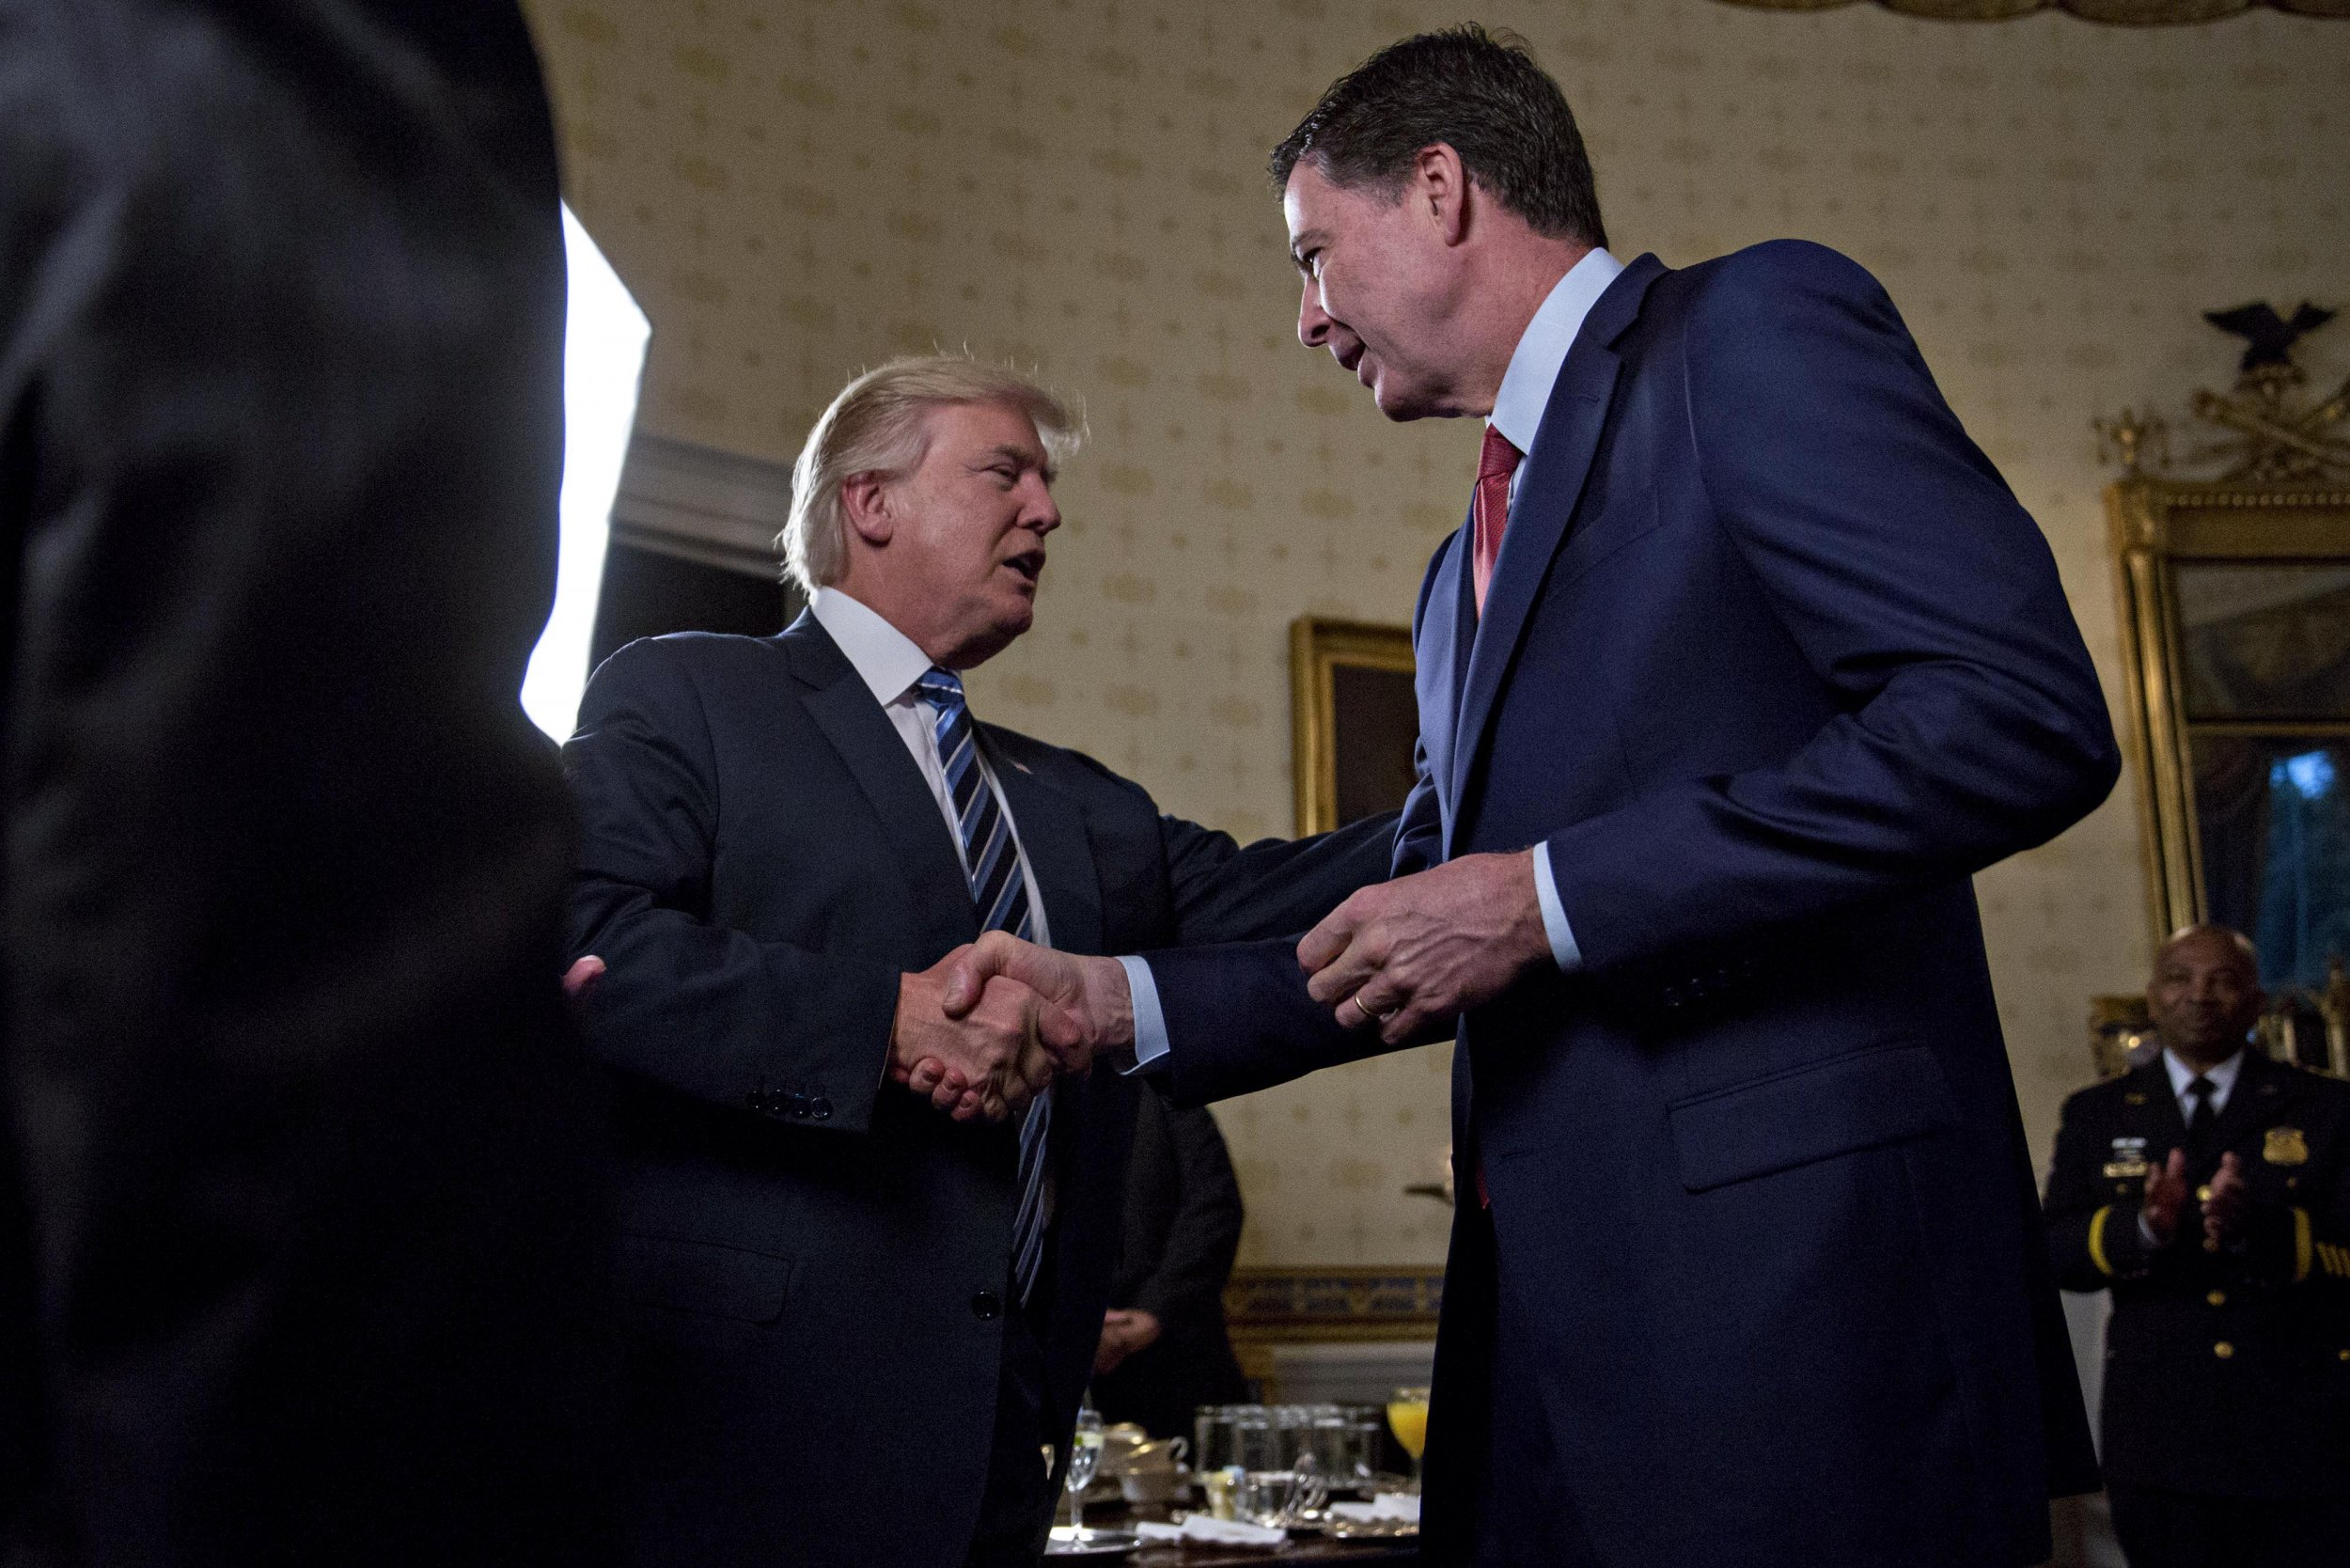 James Comey: Trump and GOP 'Dimming' American Values with Lies, Bigotry, Attacks on Press and Human Rights